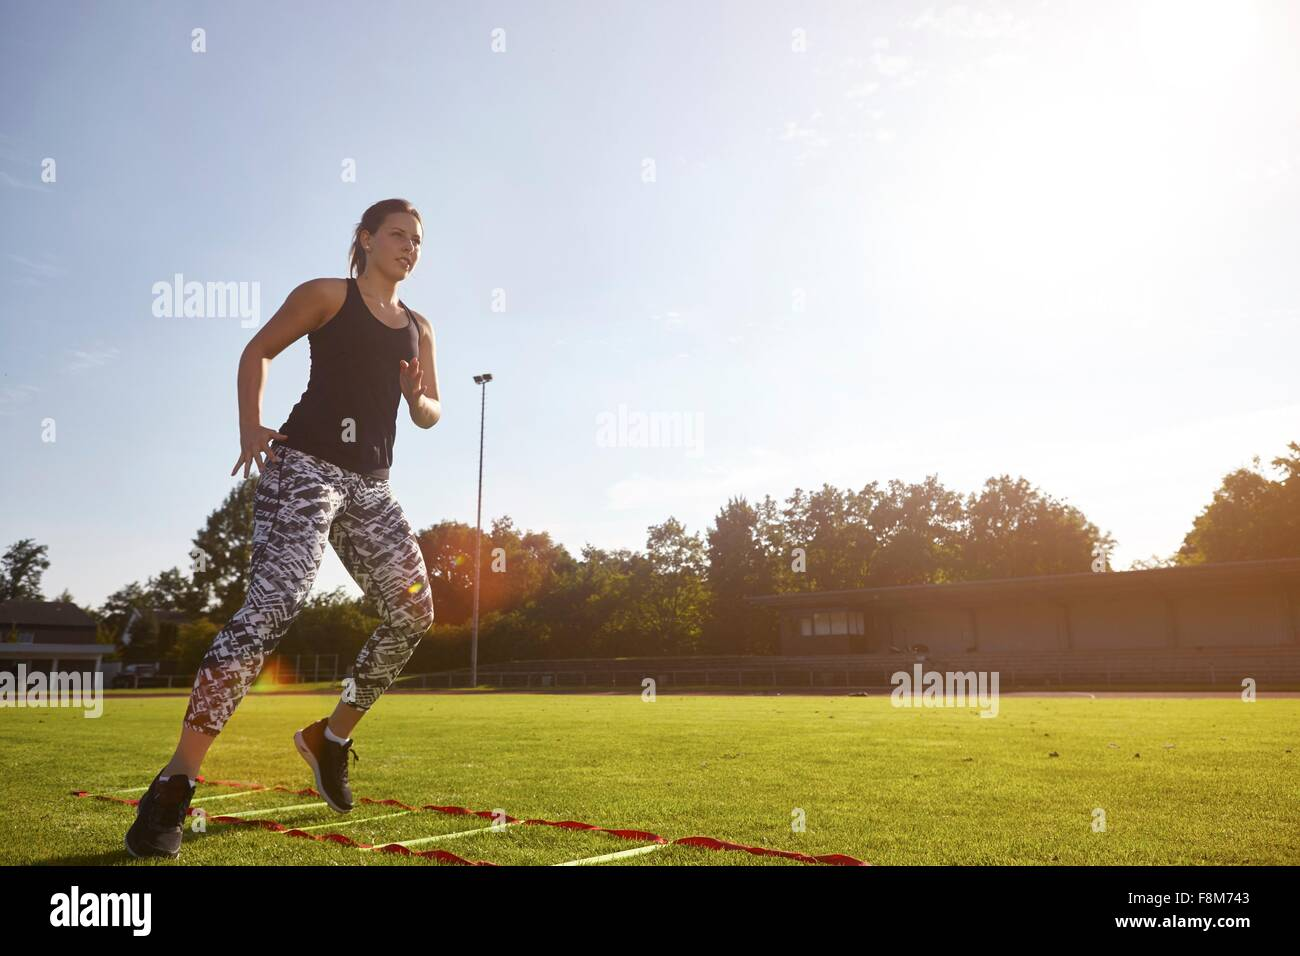 Young woman training on agility ladder on grass - Stock Image